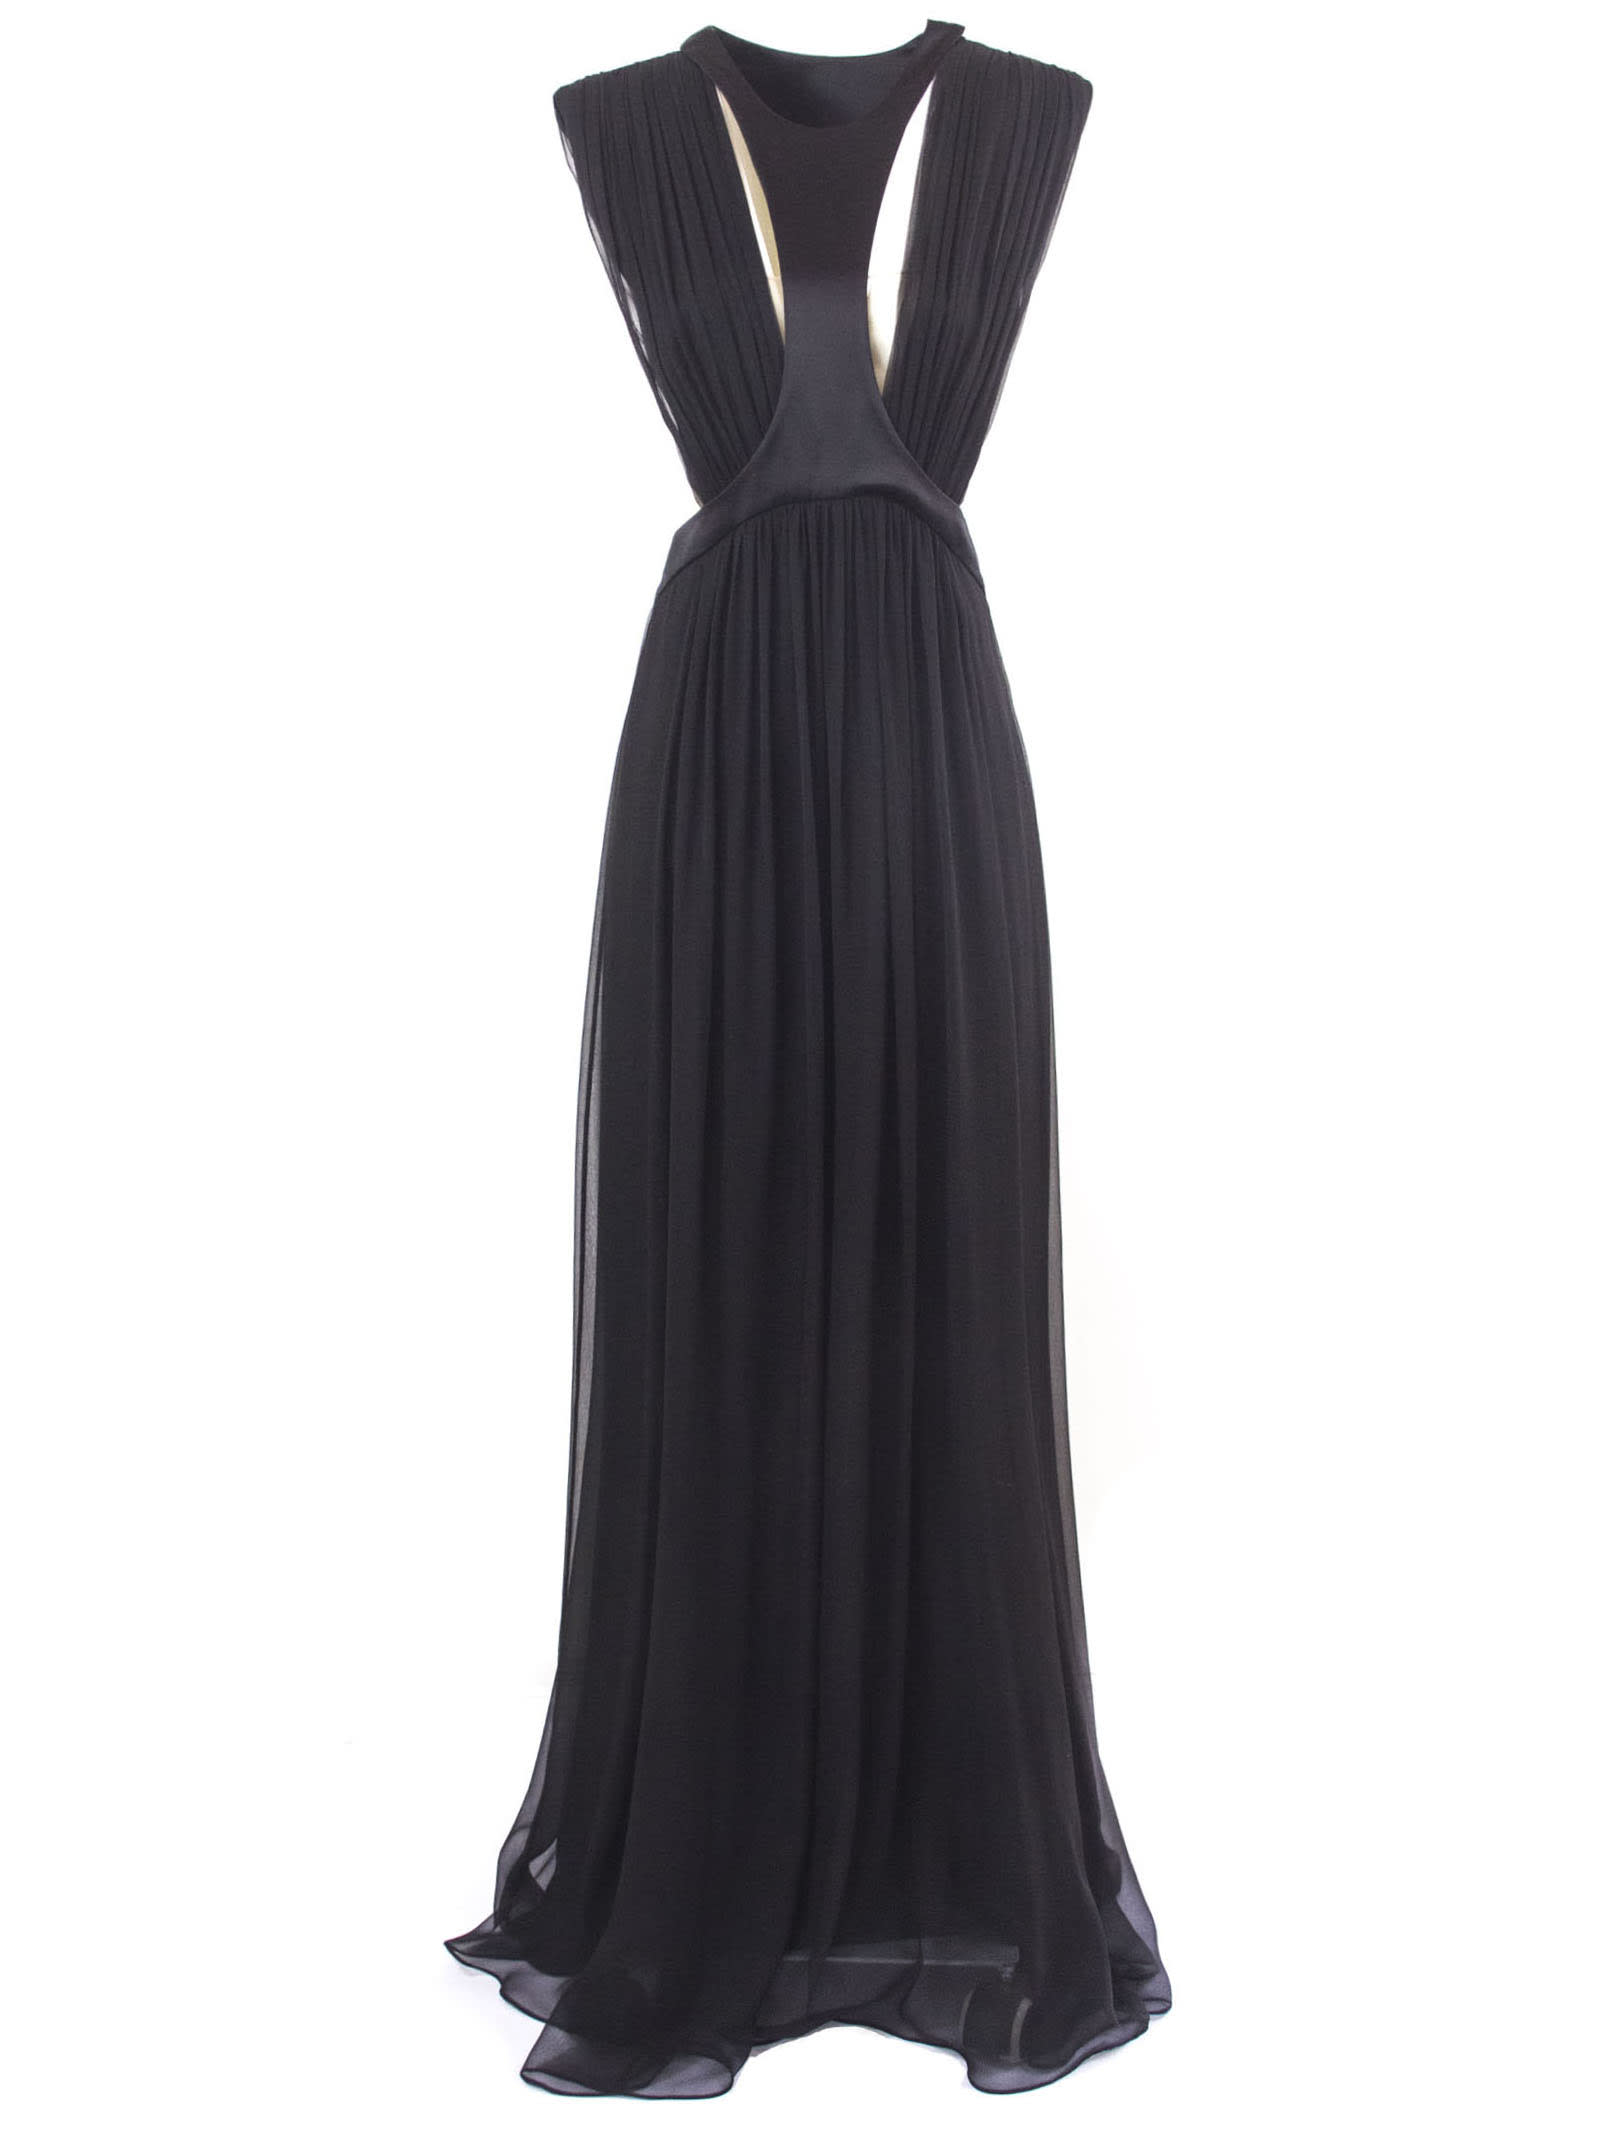 Alberta Ferretti Black Silk Draped Long Dress